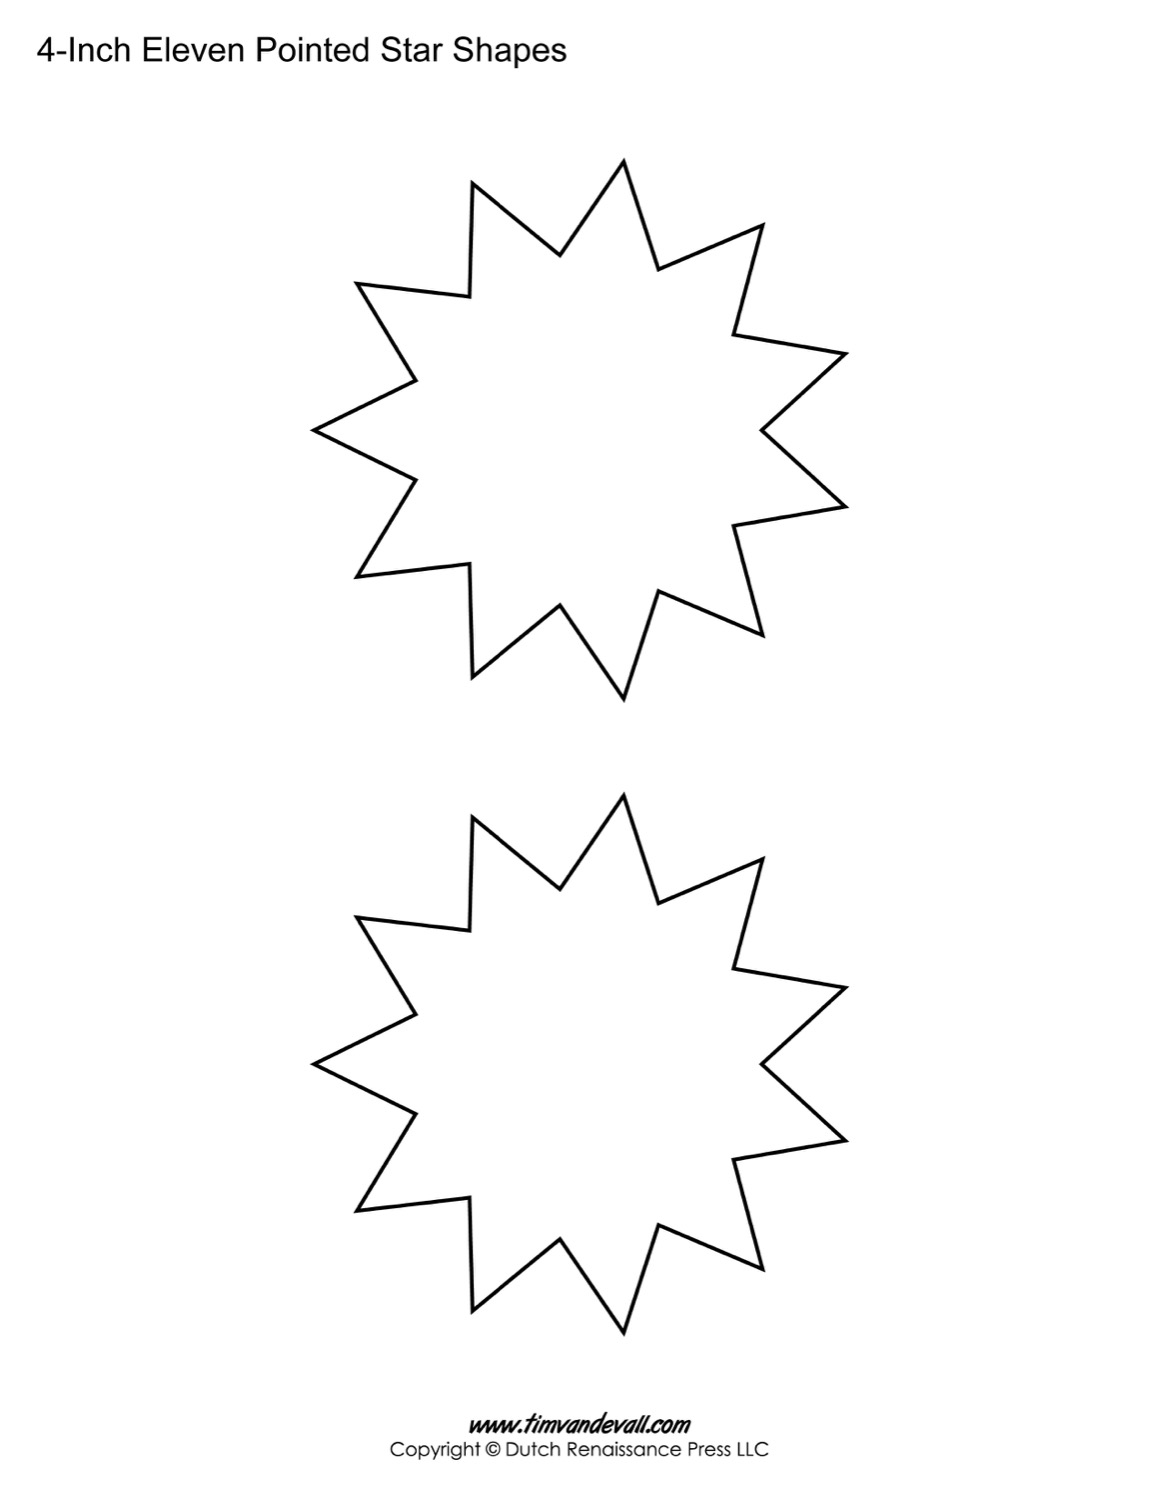 Free Eleven Pointed Star Templates